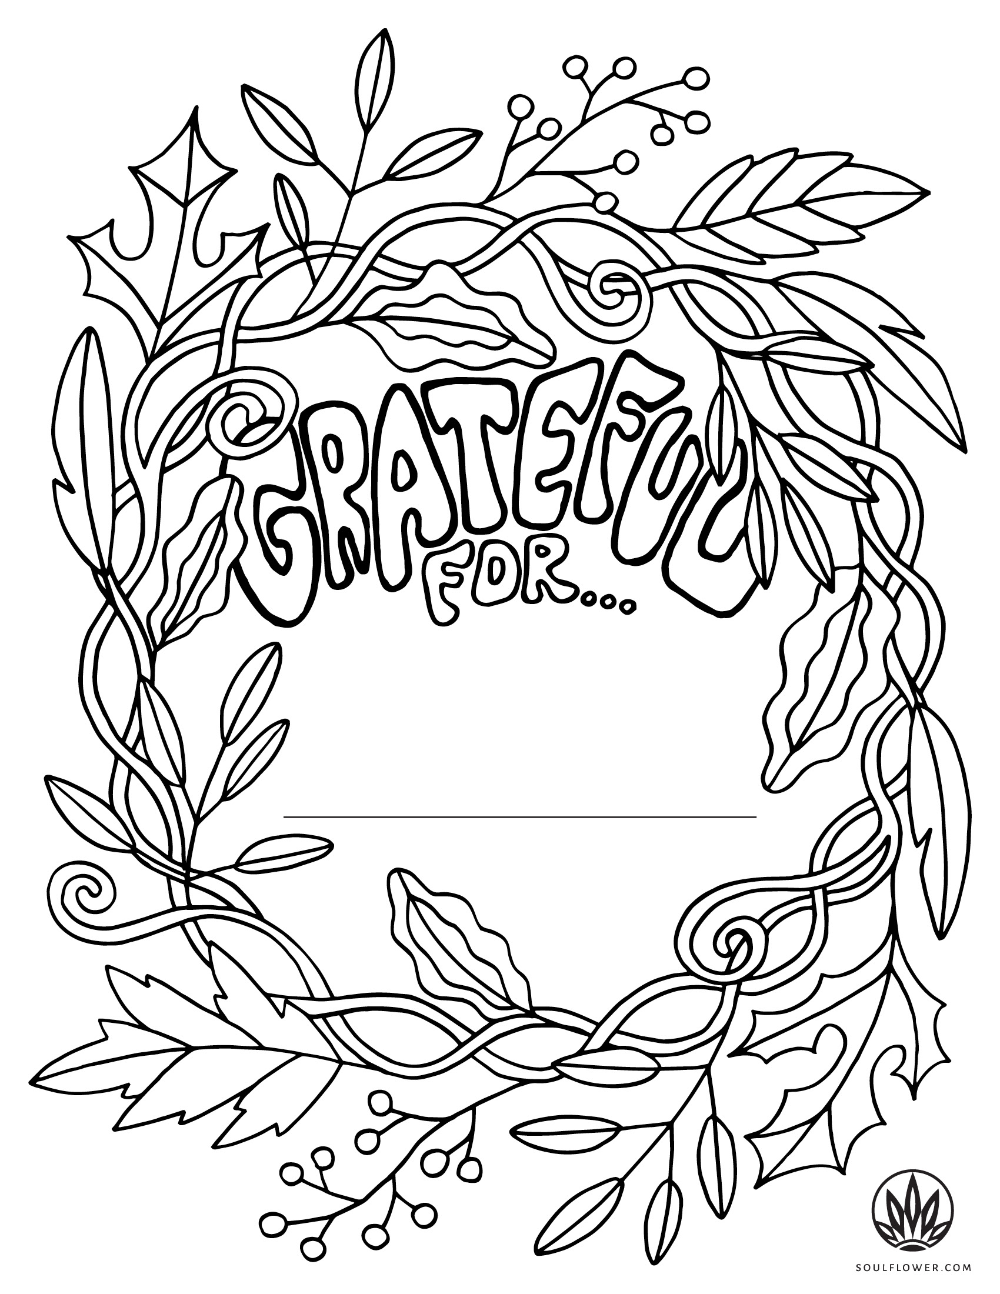 Thanksgiving Color Page Grateful Coloring Page Soul Flower Blog Free Thanksgiving Coloring Pages Thanksgiving Coloring Pages Coloring Pages Inspirational [ 1294 x 1000 Pixel ]